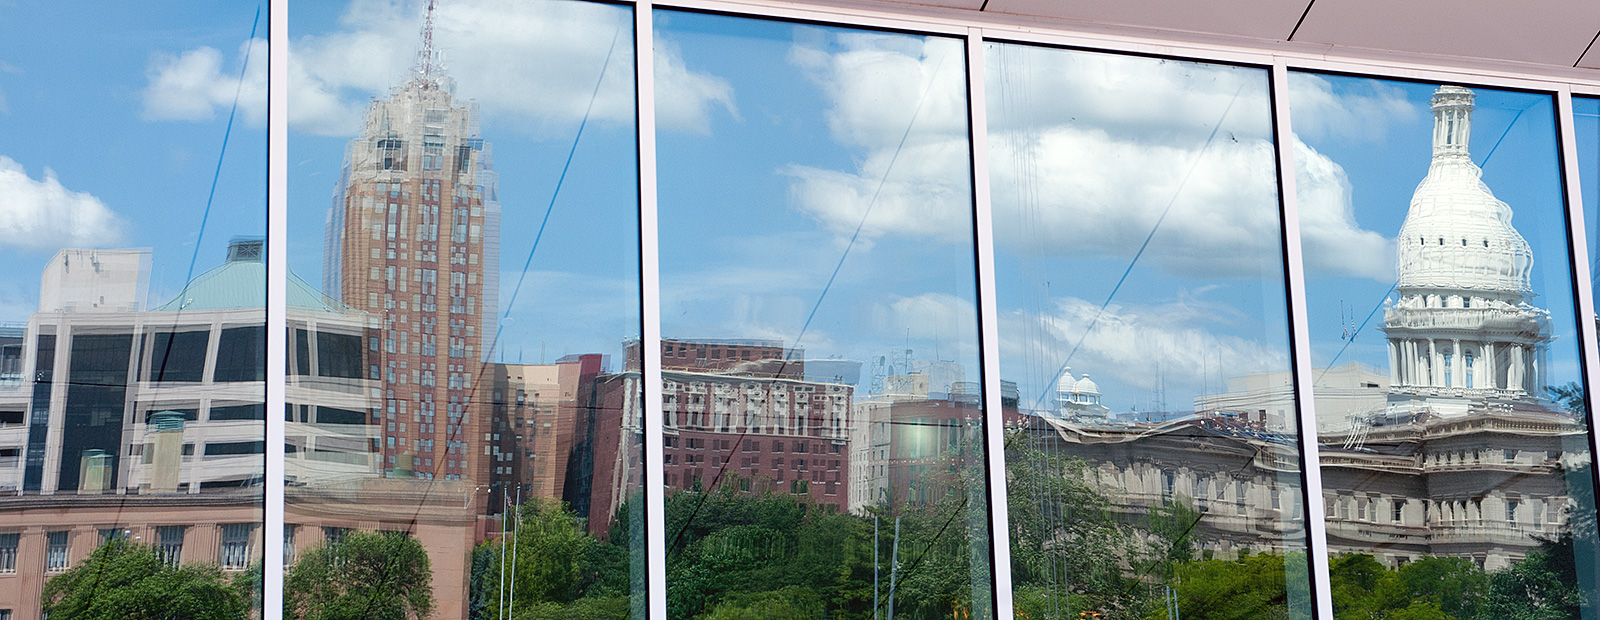 The Lansing skyline reflected in the glass of Constitution Hall - Photo Dave Trumpie